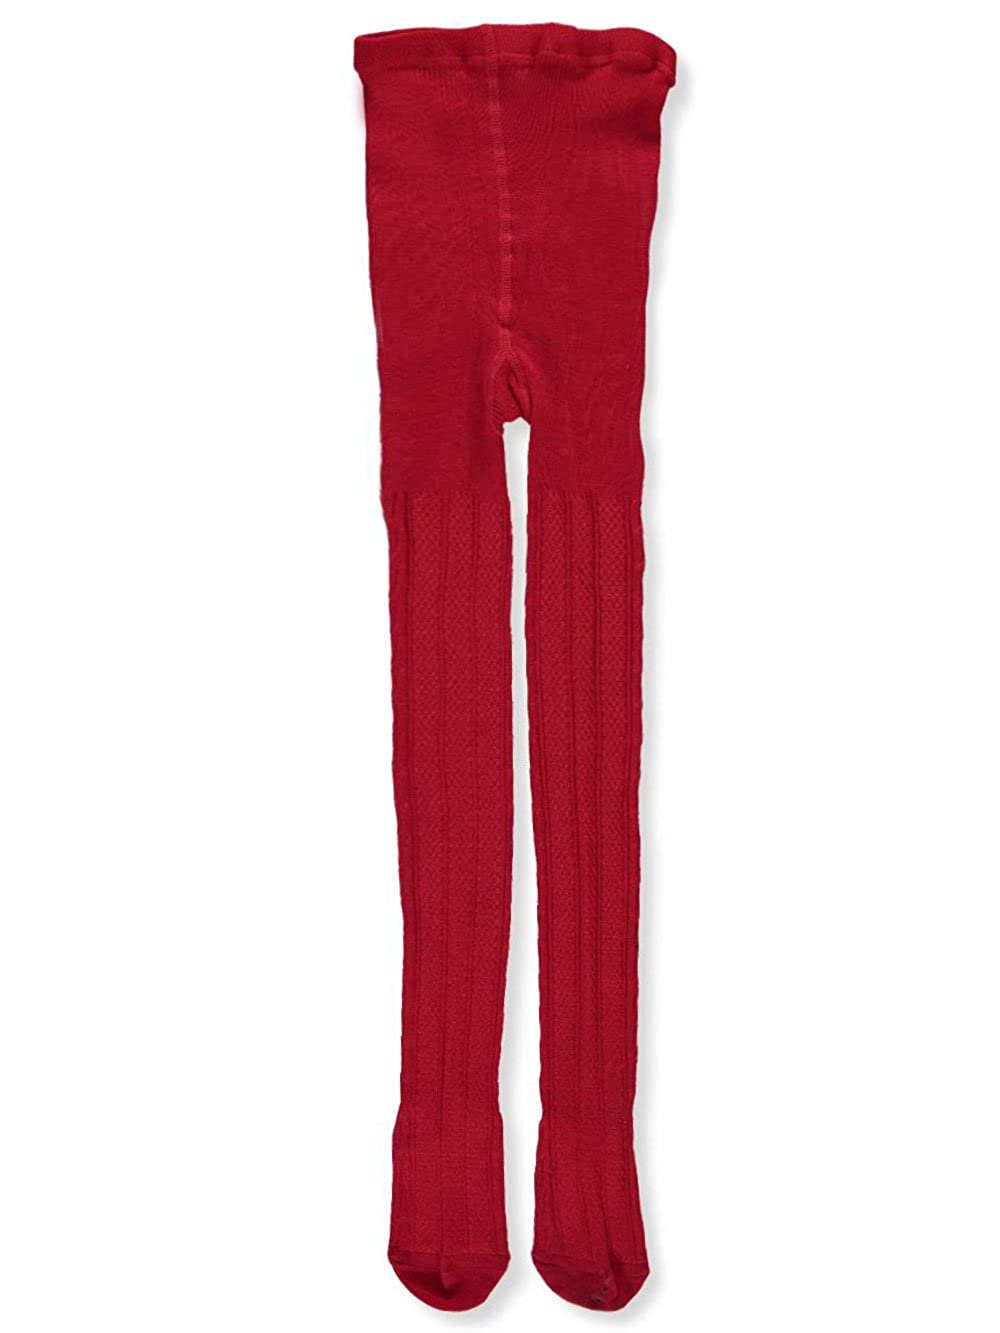 Cookie's Brand Cable Knit Tights Cookie' s Brand